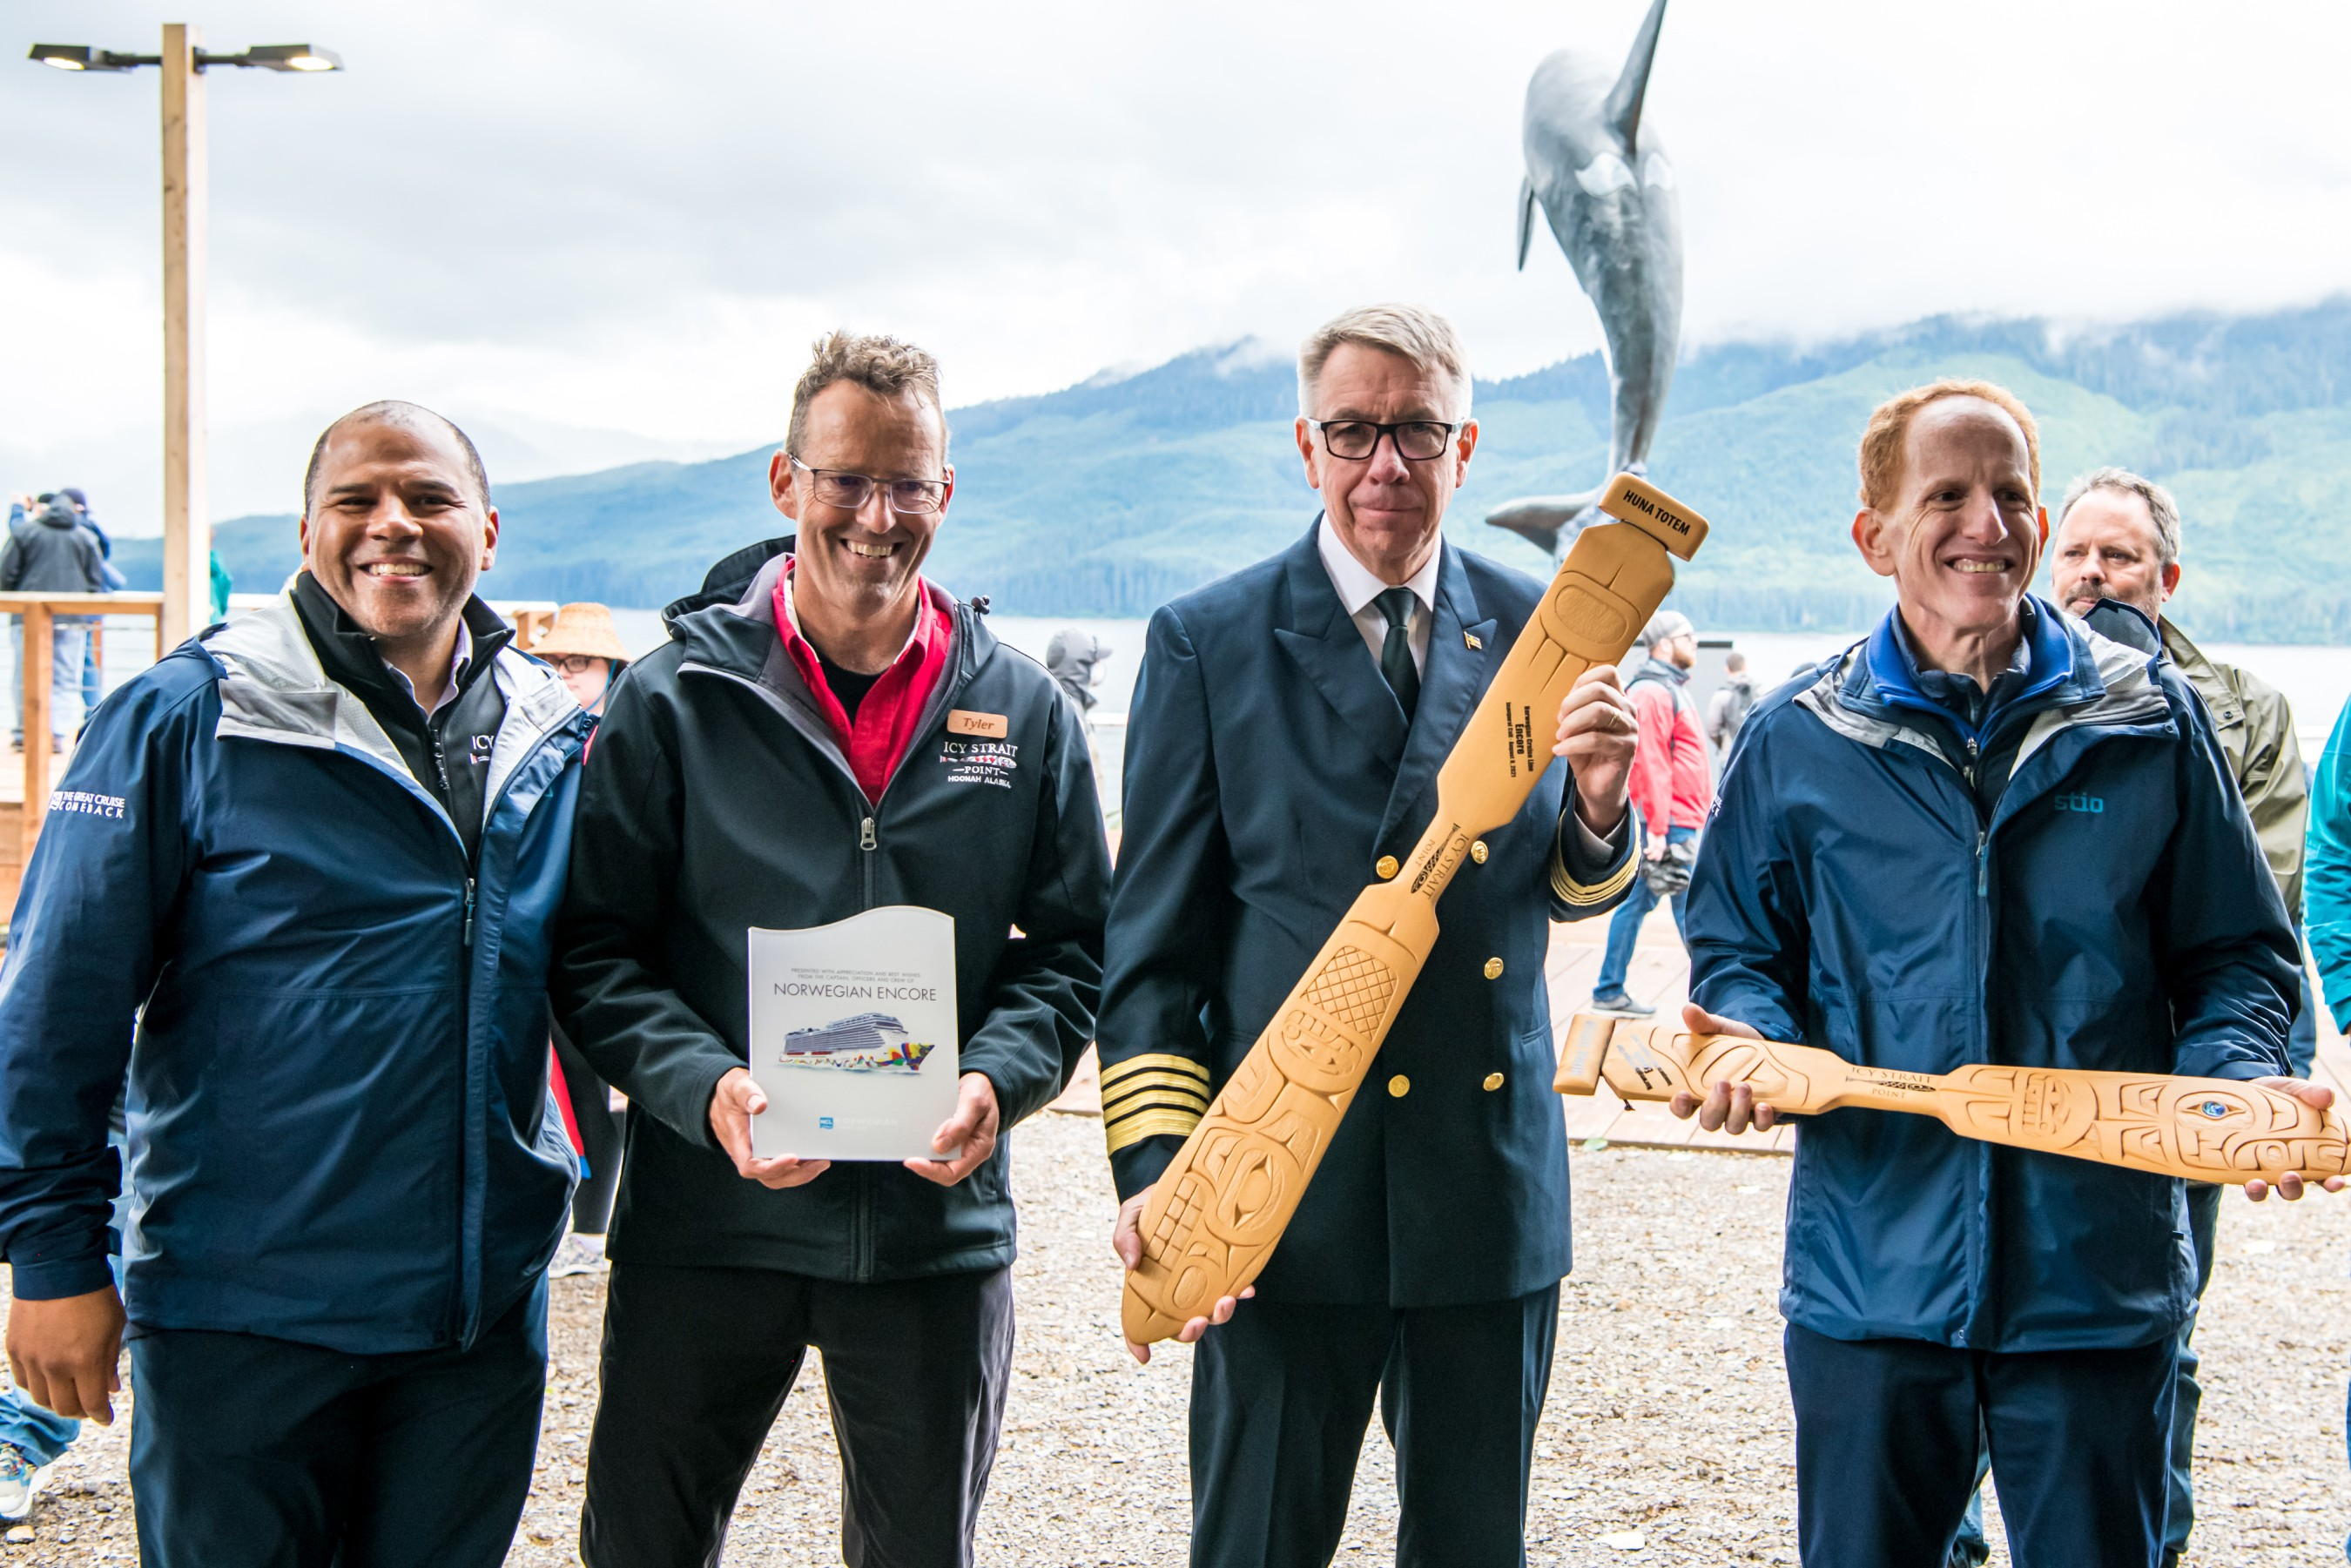 Norwegian Cruise Line and Huna Totem Corporation host ceremonial plaque exchange during Norwegian Encore's debut call to Icy Strait Point, Alaska. In attendance were CEO of Huna Totem Corporation Russell Dick, Vice President of Huna Totem Corporation Tyler Hickman, Norwegian Encore Captain Martin Holmqvist and NCL President and CEO Harry Sommer. Photos by Alive Coverage.